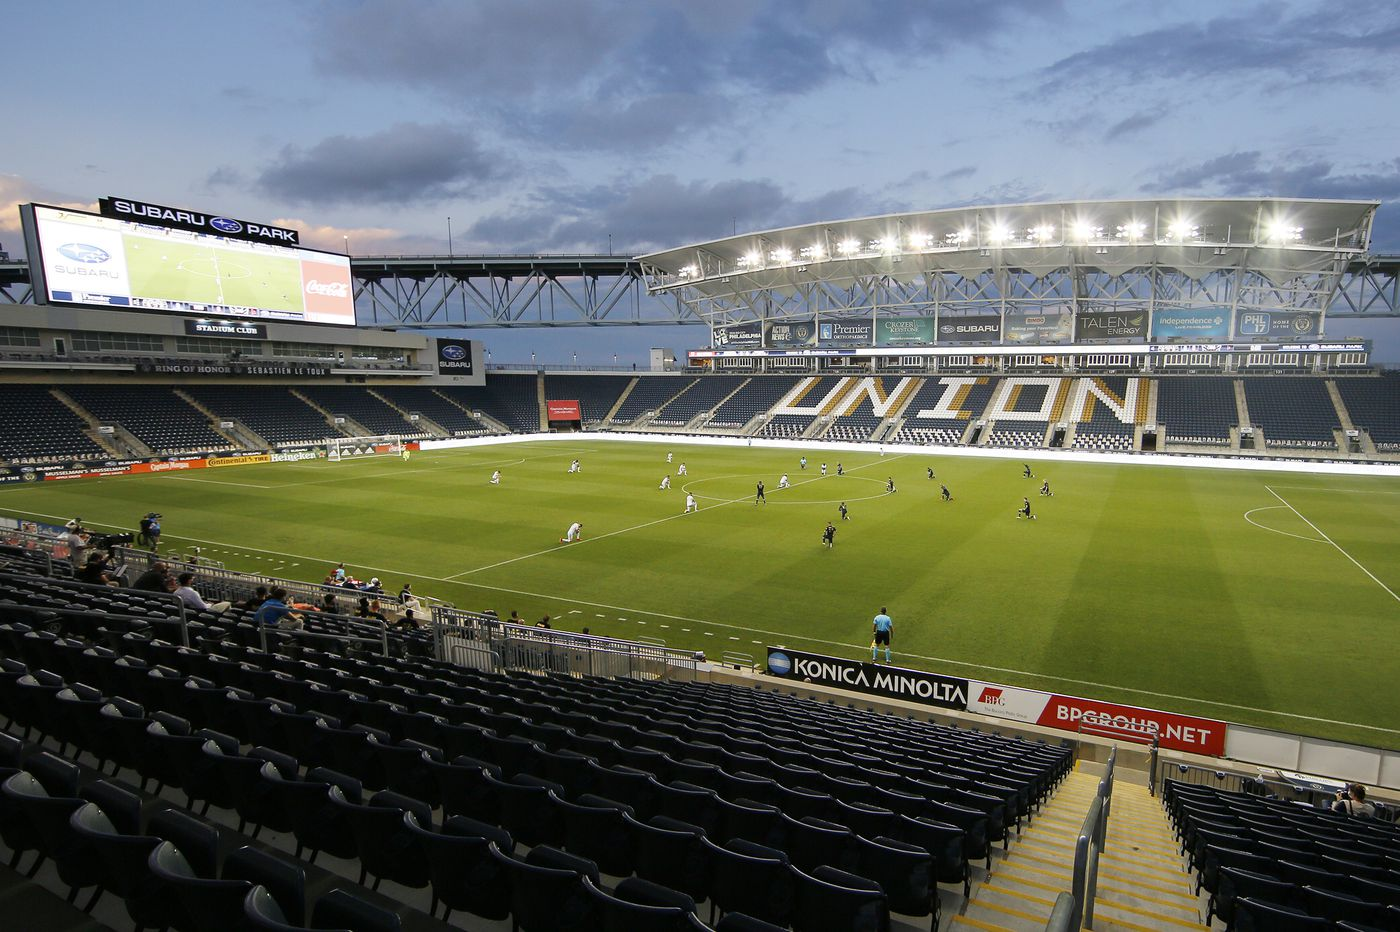 The Union will be the first Philadelphia sports team to have fans back in the stands